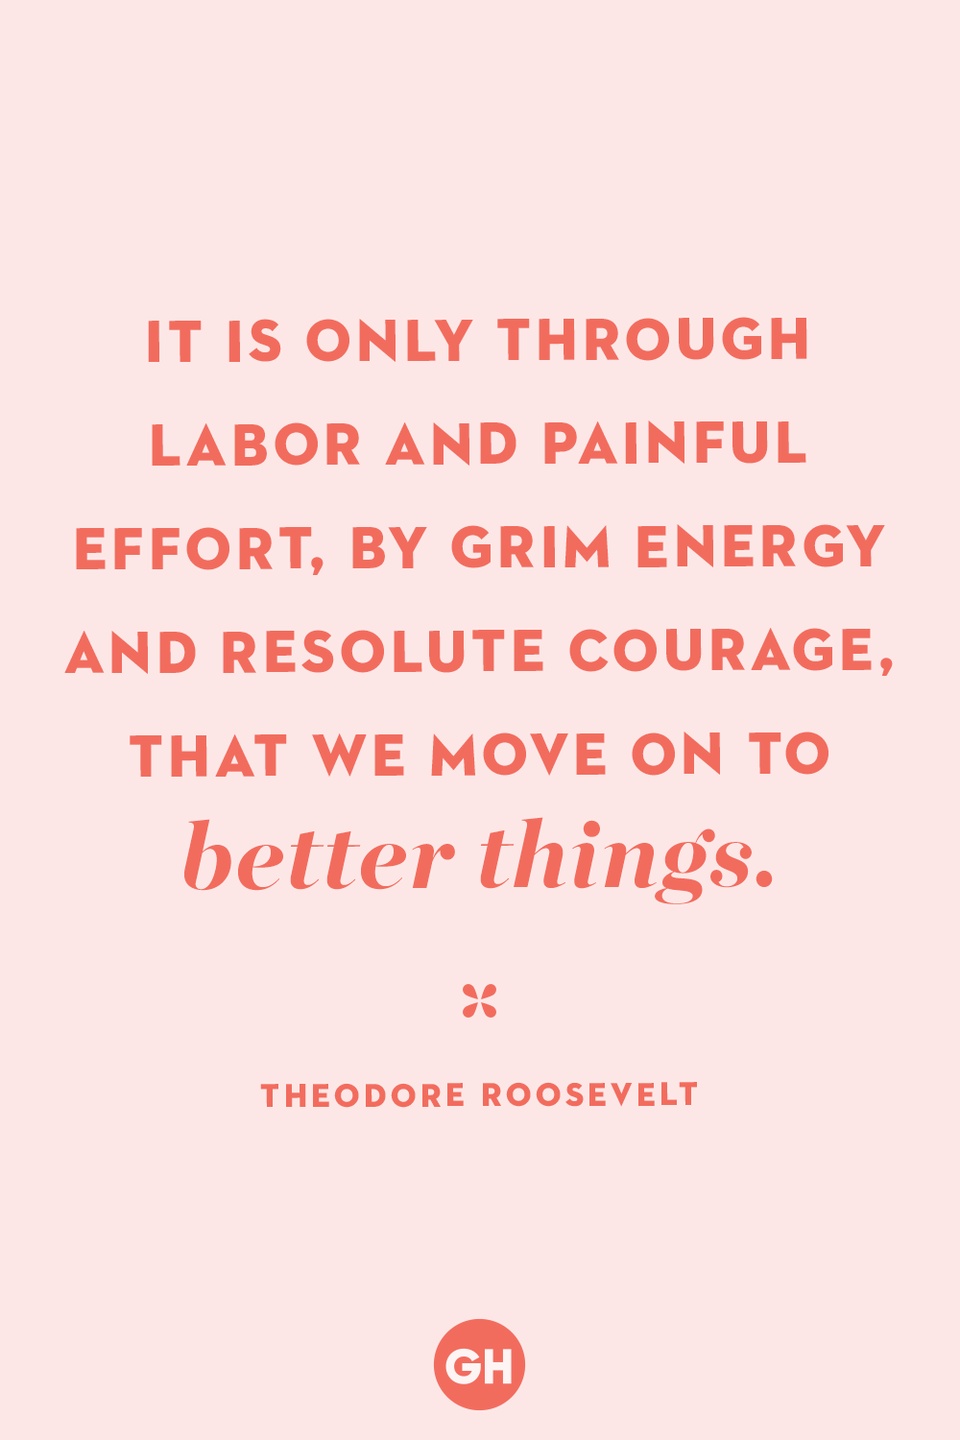 <p>It is only through labor and painful effort, by grim energy and resolute courage, that we move on to better things.</p>